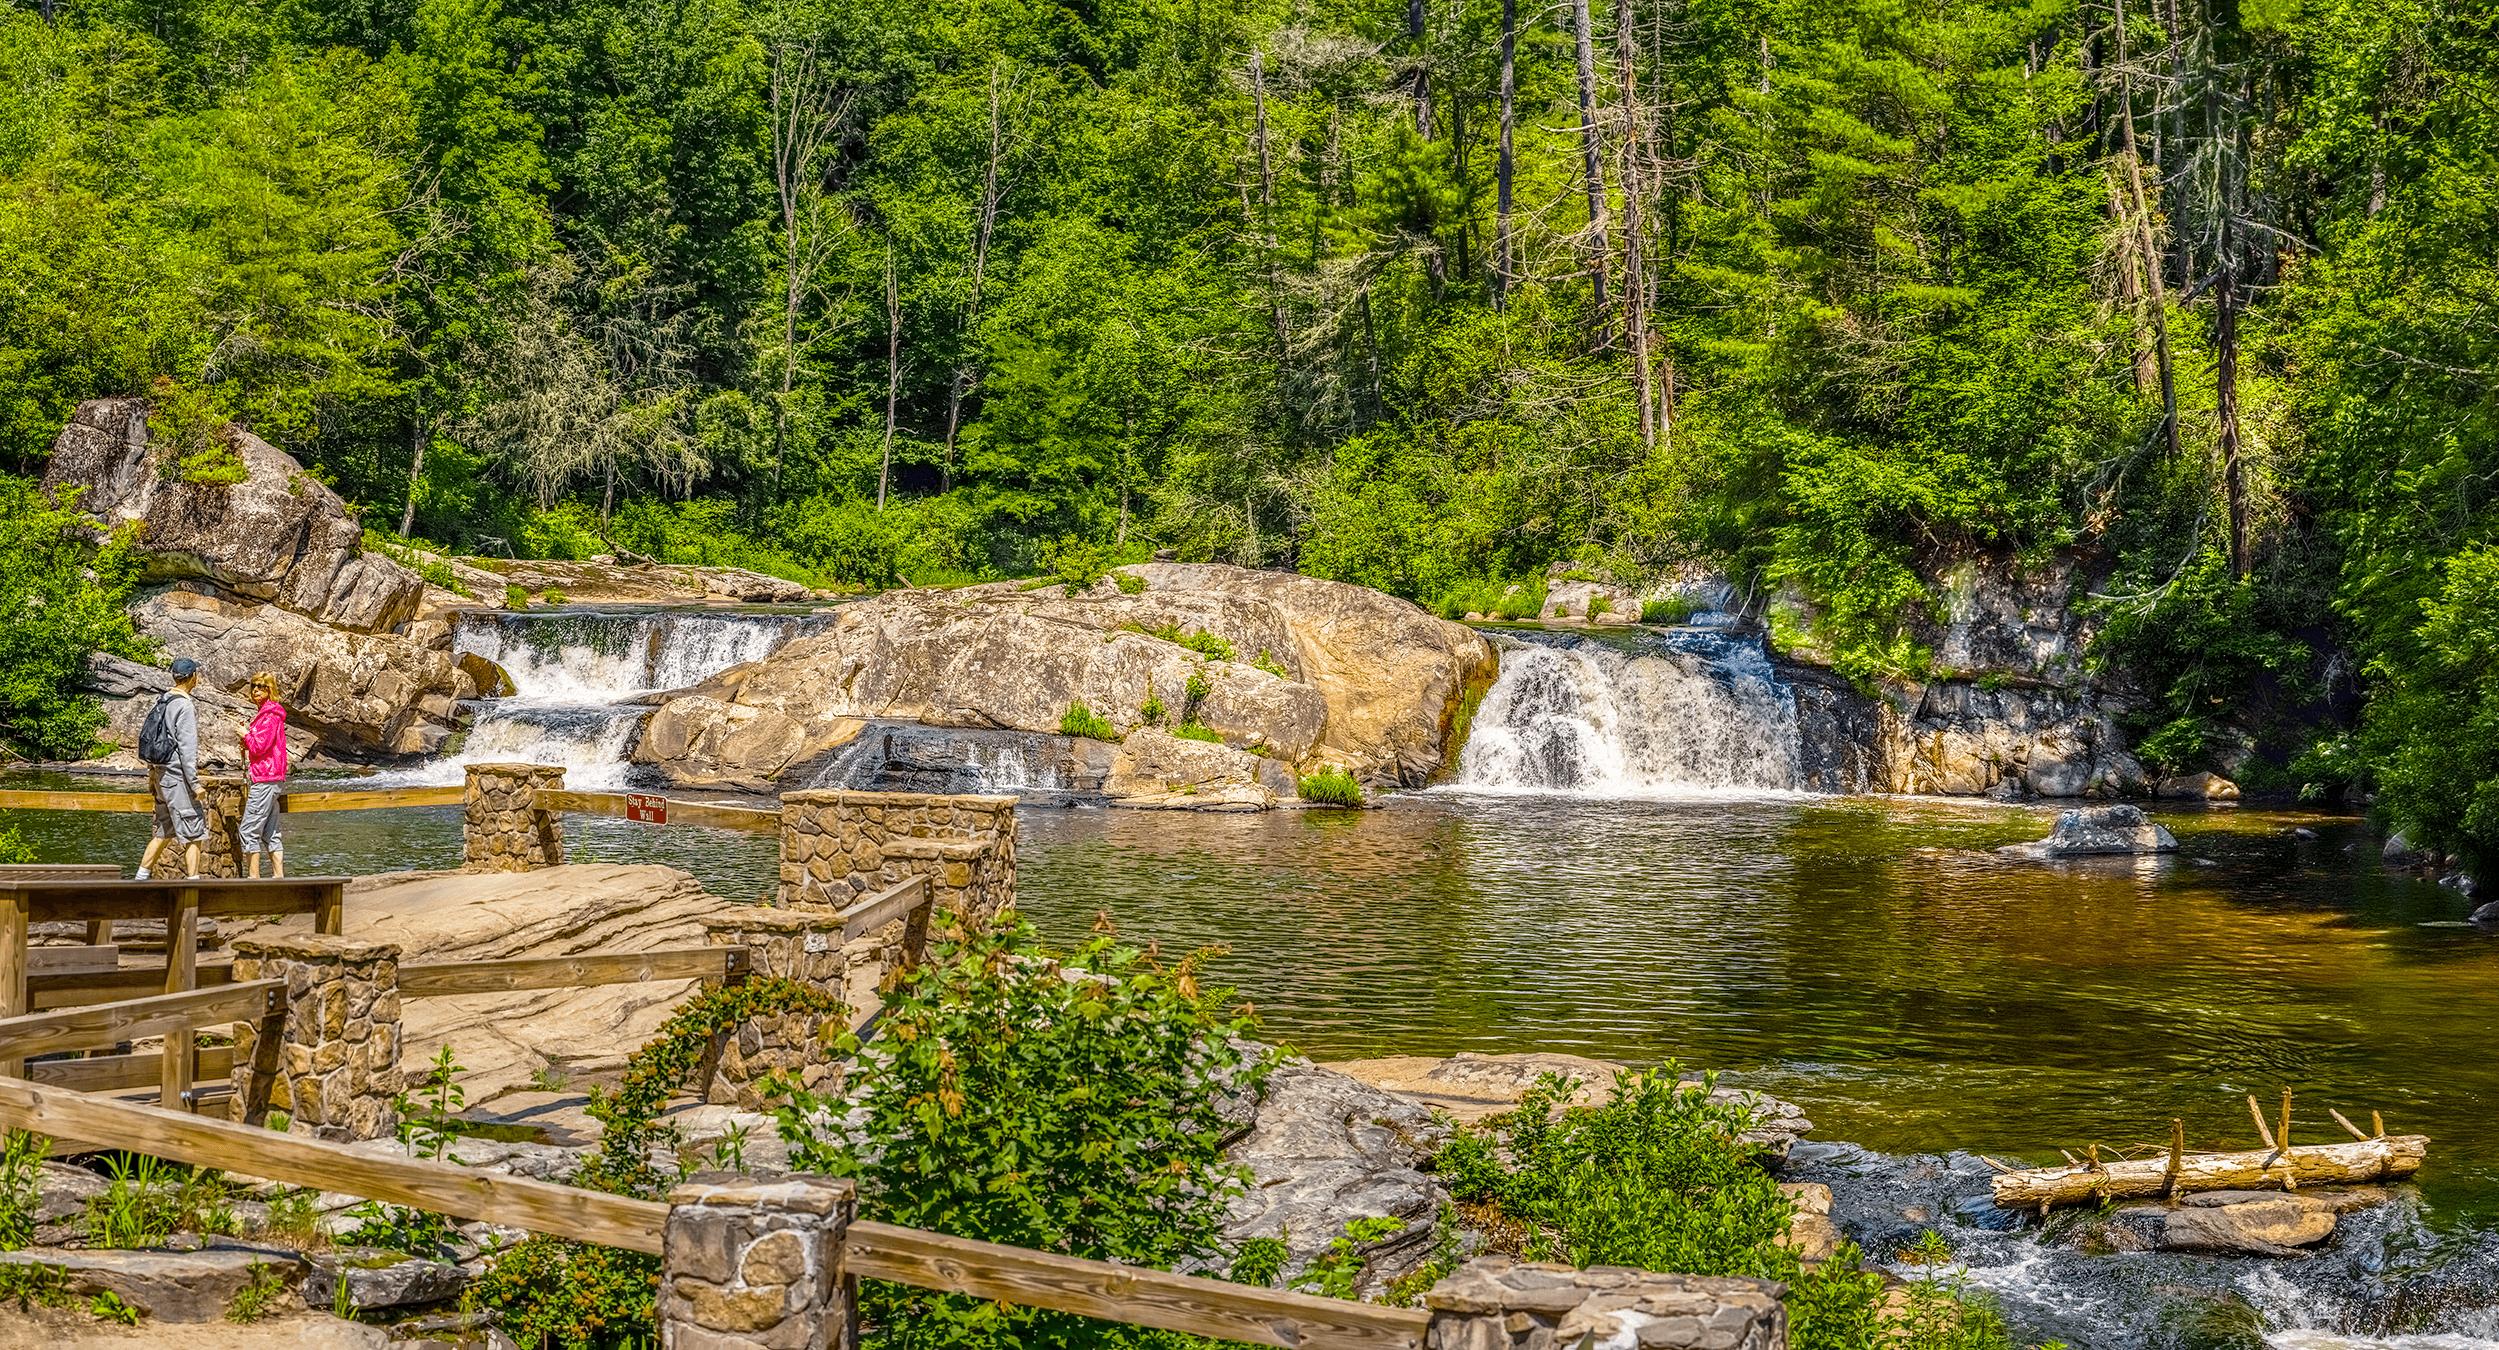 The  Upper Falls Viewing Platform  is an easy 0.5-mile (0.8 km) hike up from the  Visitor Center . It offers picture-perfect views of the rather gentle  Upper Falls . The  Linville River  widens here as it would pause before...